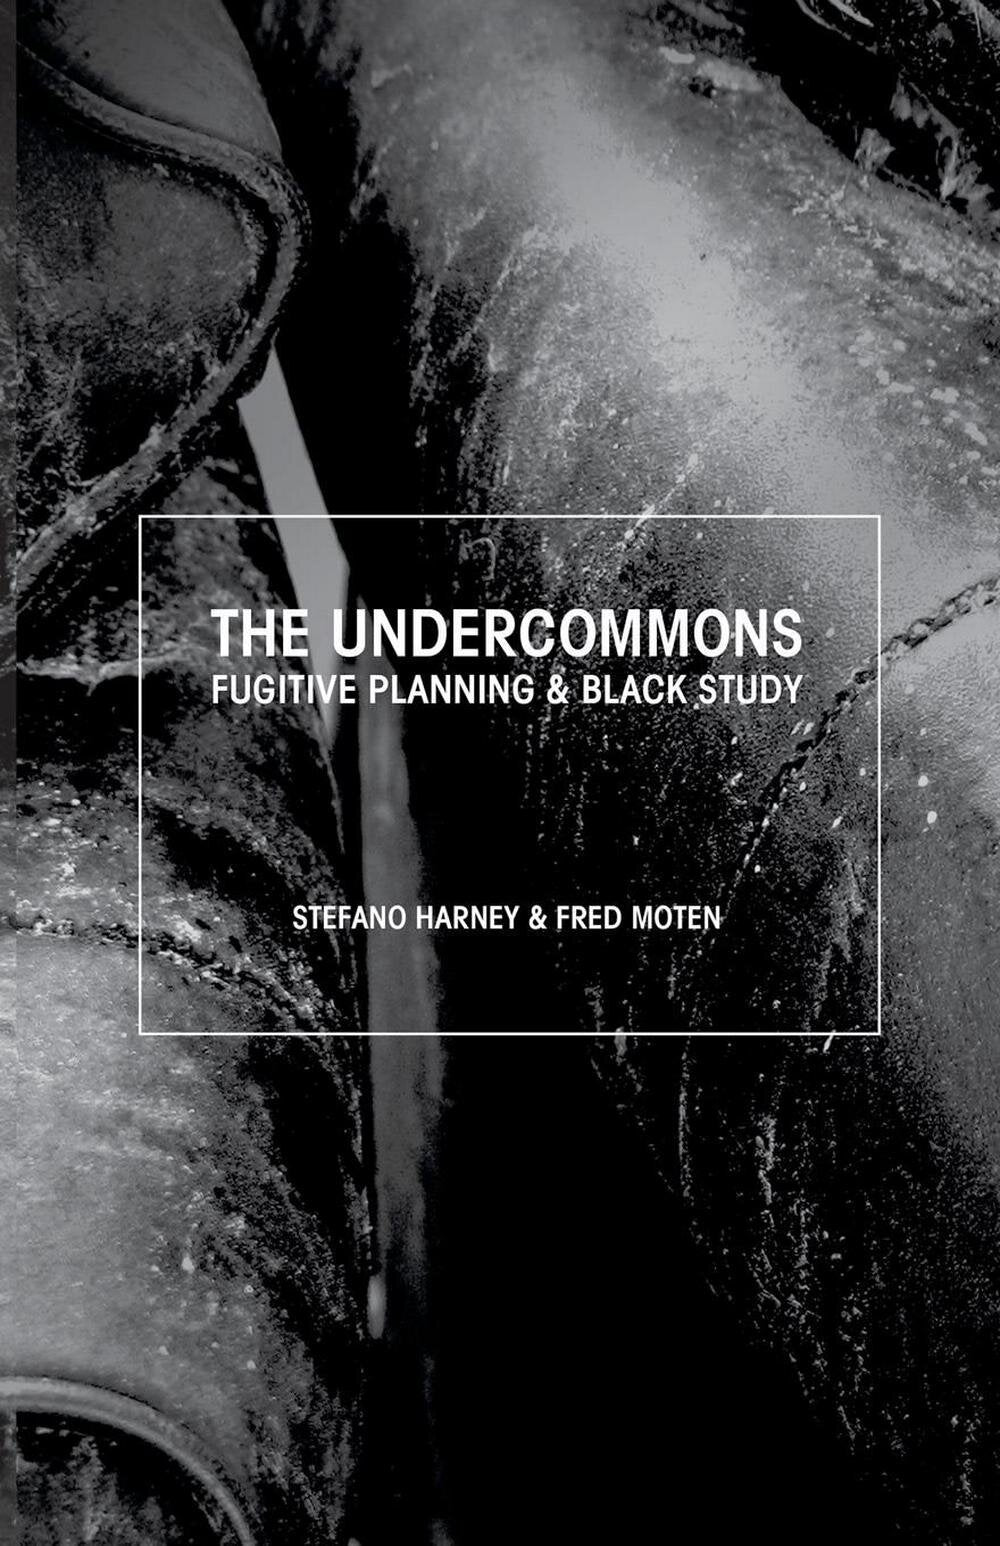 The Undercommons: Fugitive Planning & Black Study by Stefano Harney, Fred Moten